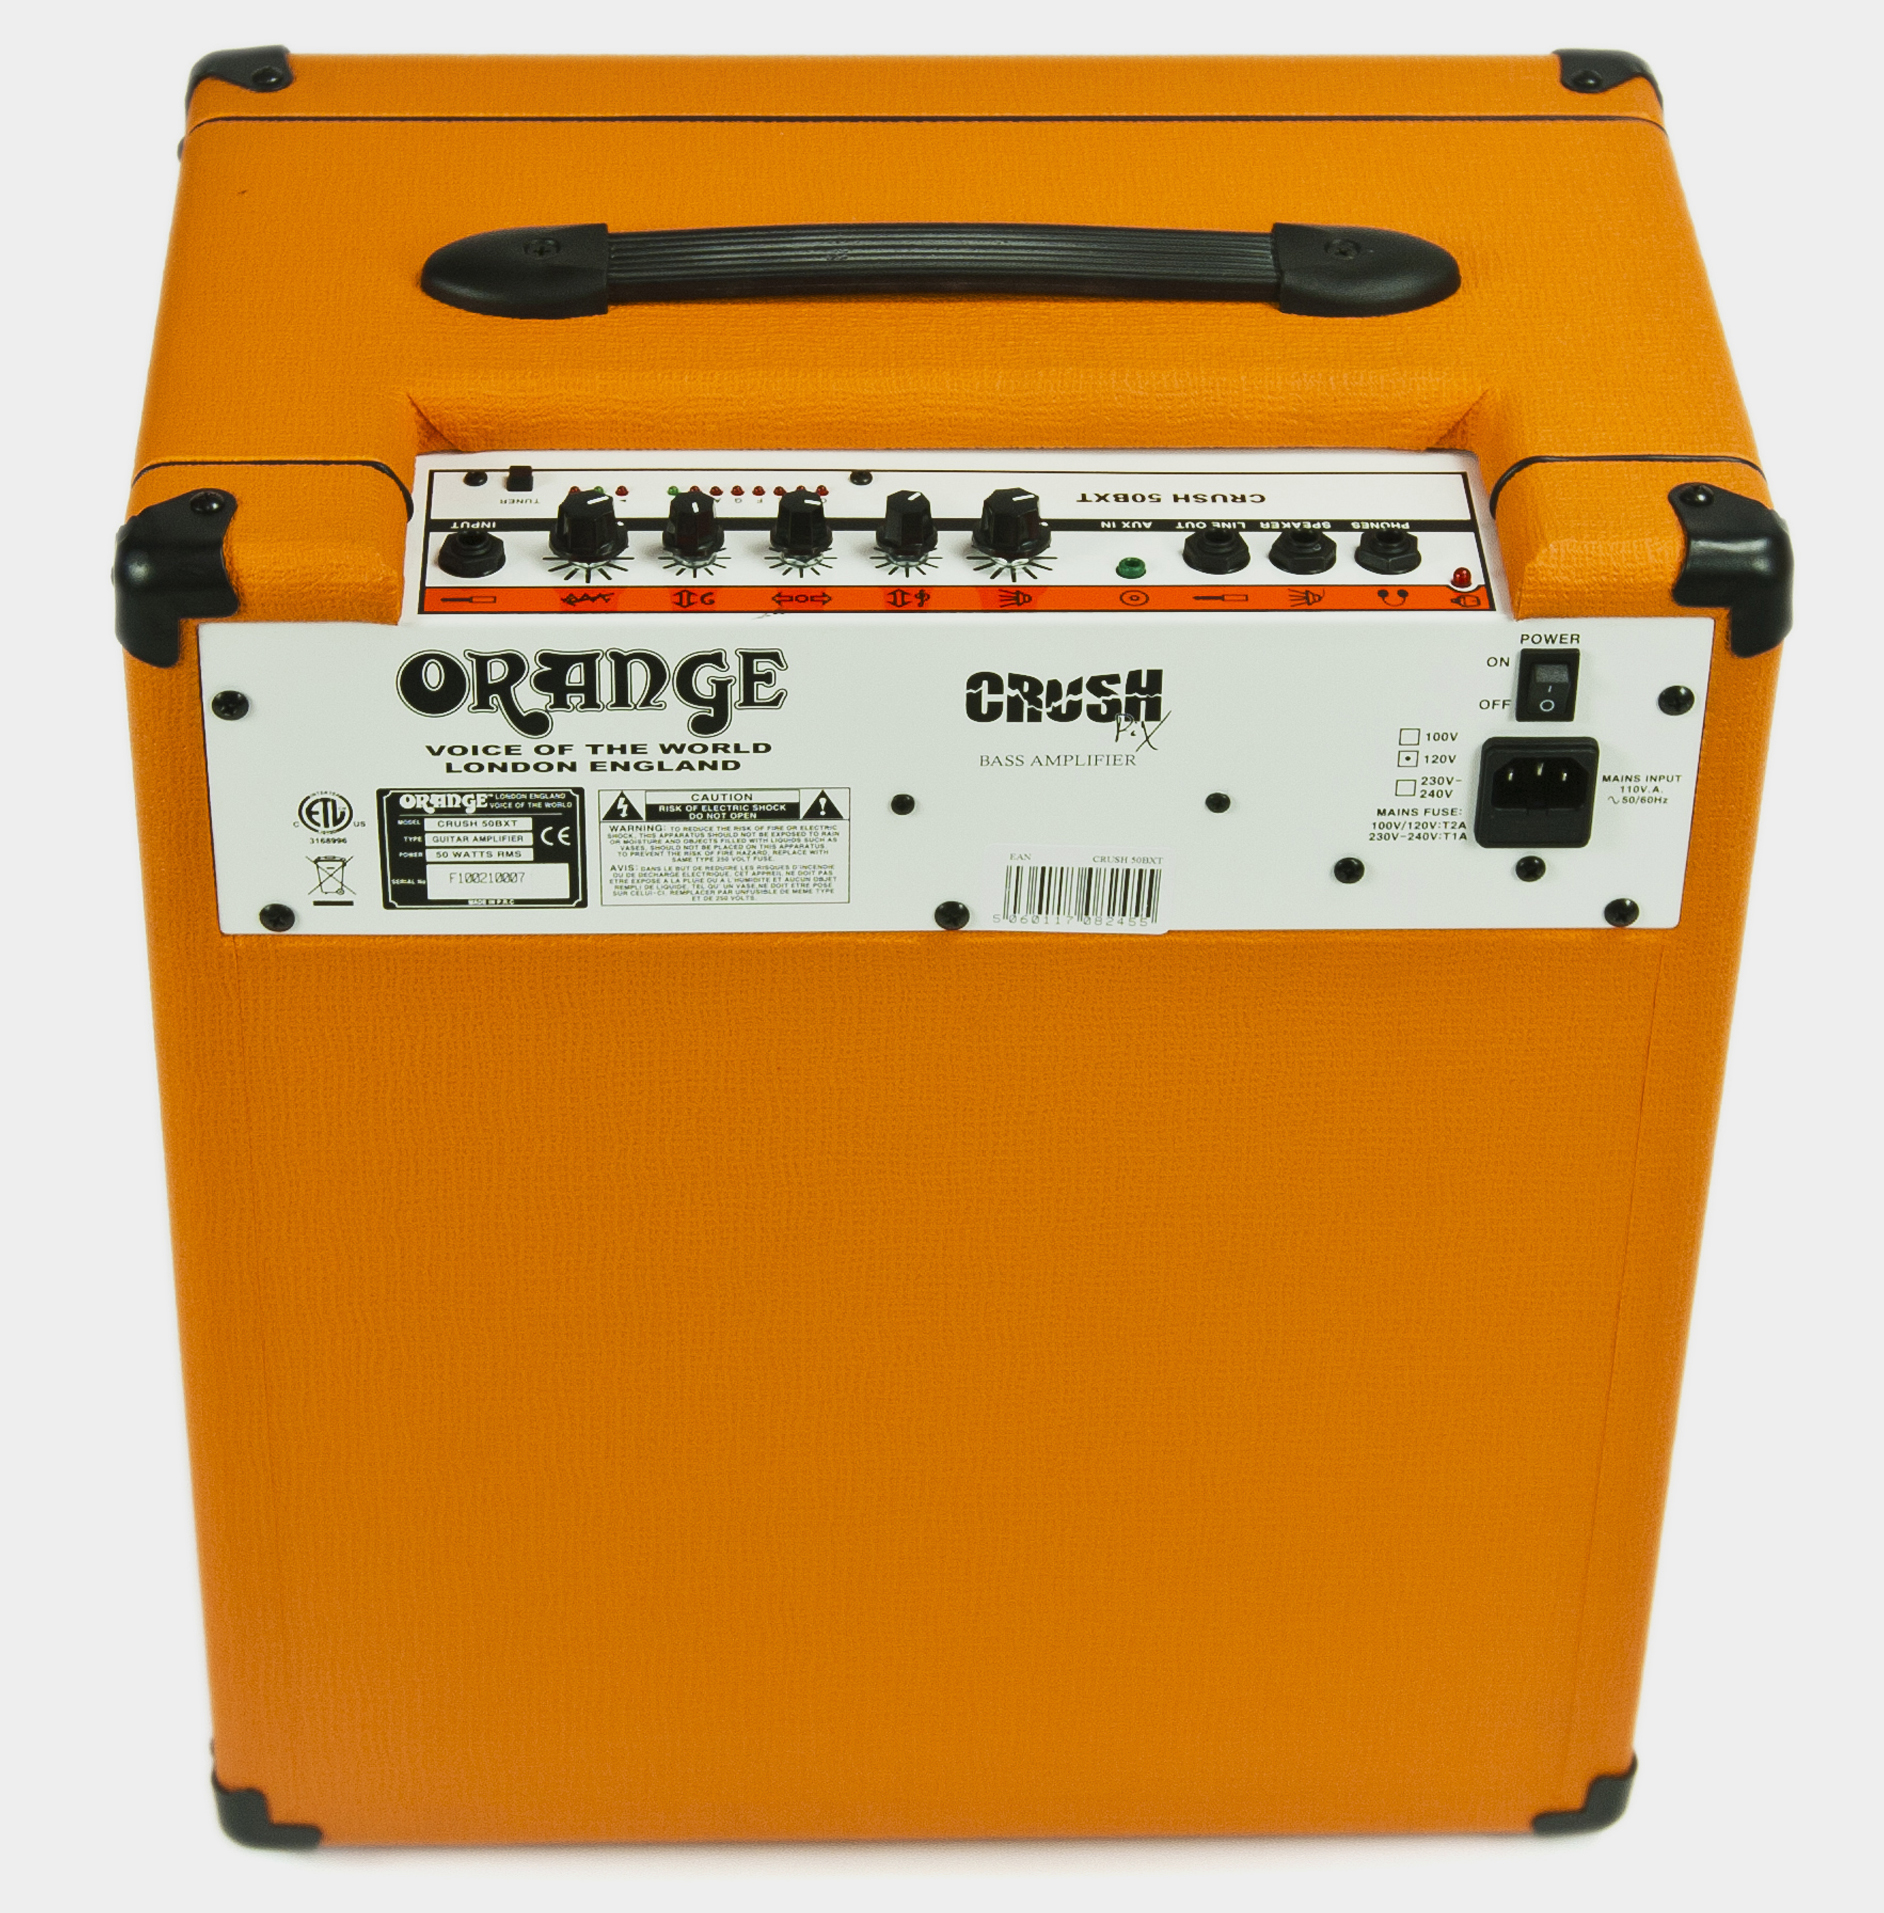 ORANGE CrushPiX CR50BX Rear